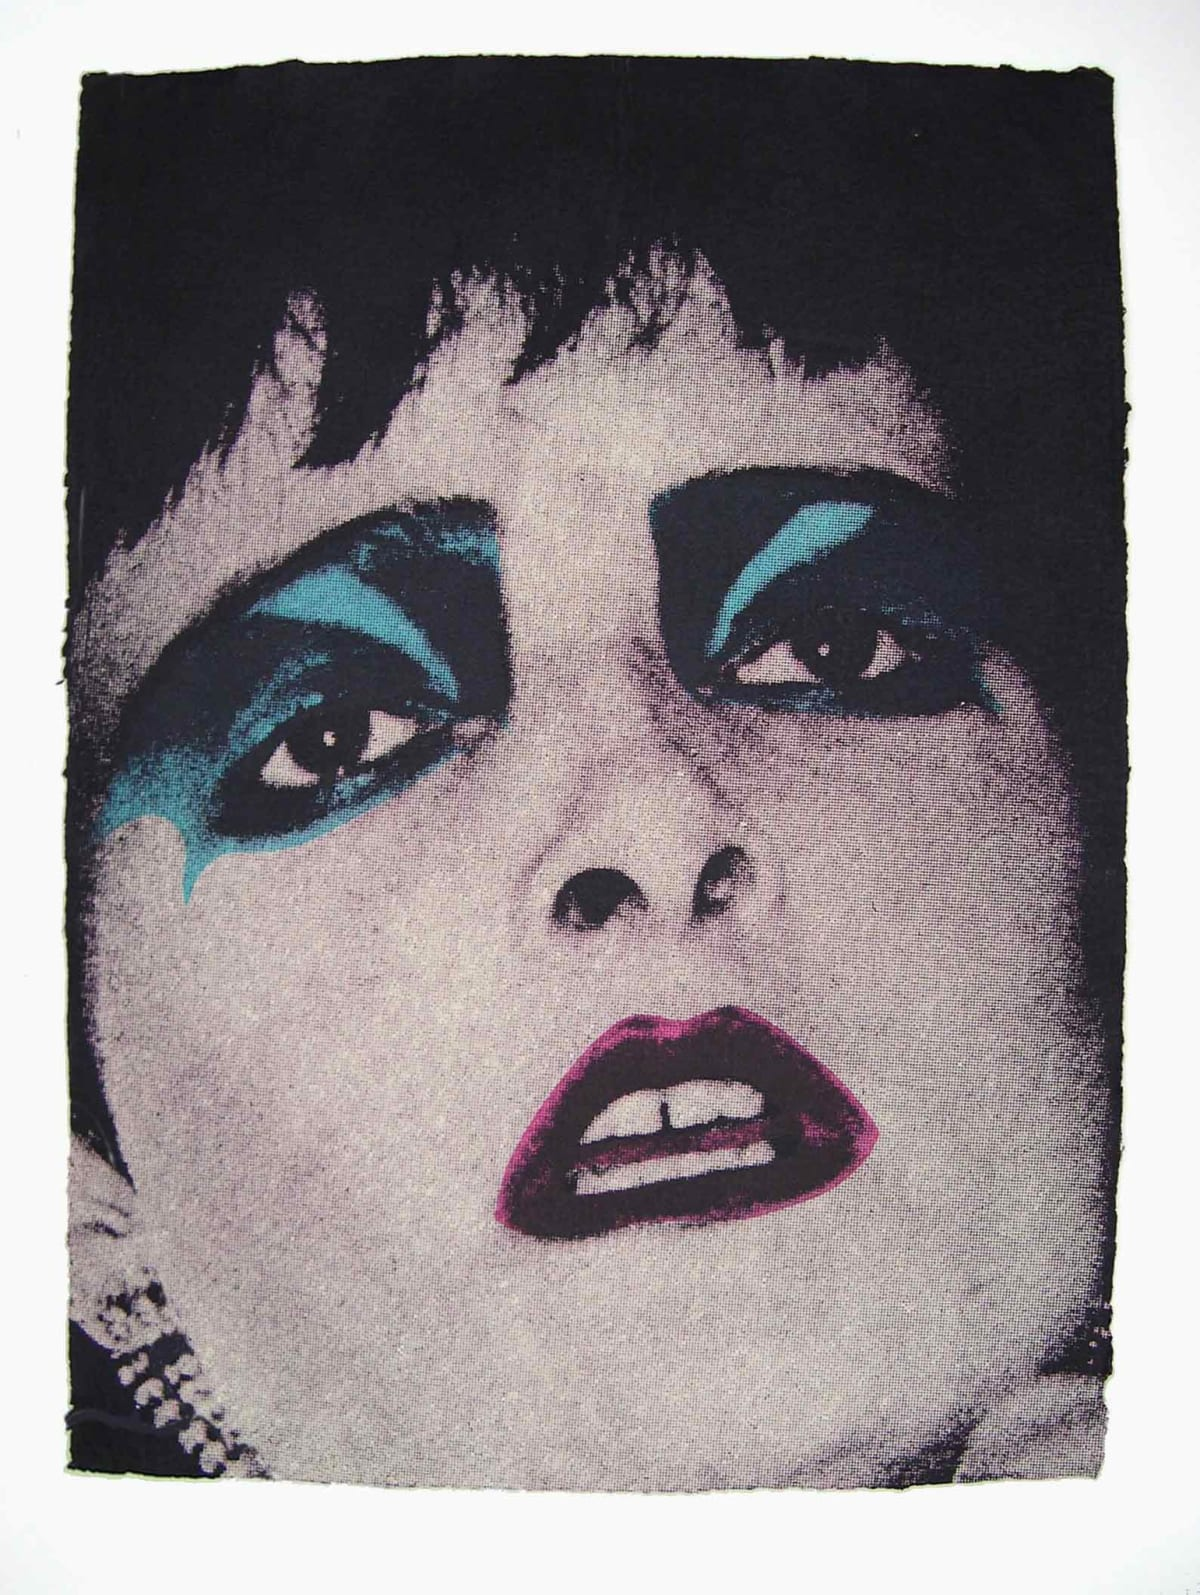 John Dove and Molly White Siouxsie (Face No.2), 2009 Screenprint on Hand-made Rag paper, made from recycled T-Shirts. Signed verso. Edition of 100. 76 x 56 cm 29.9 x 22 in Edition of 100